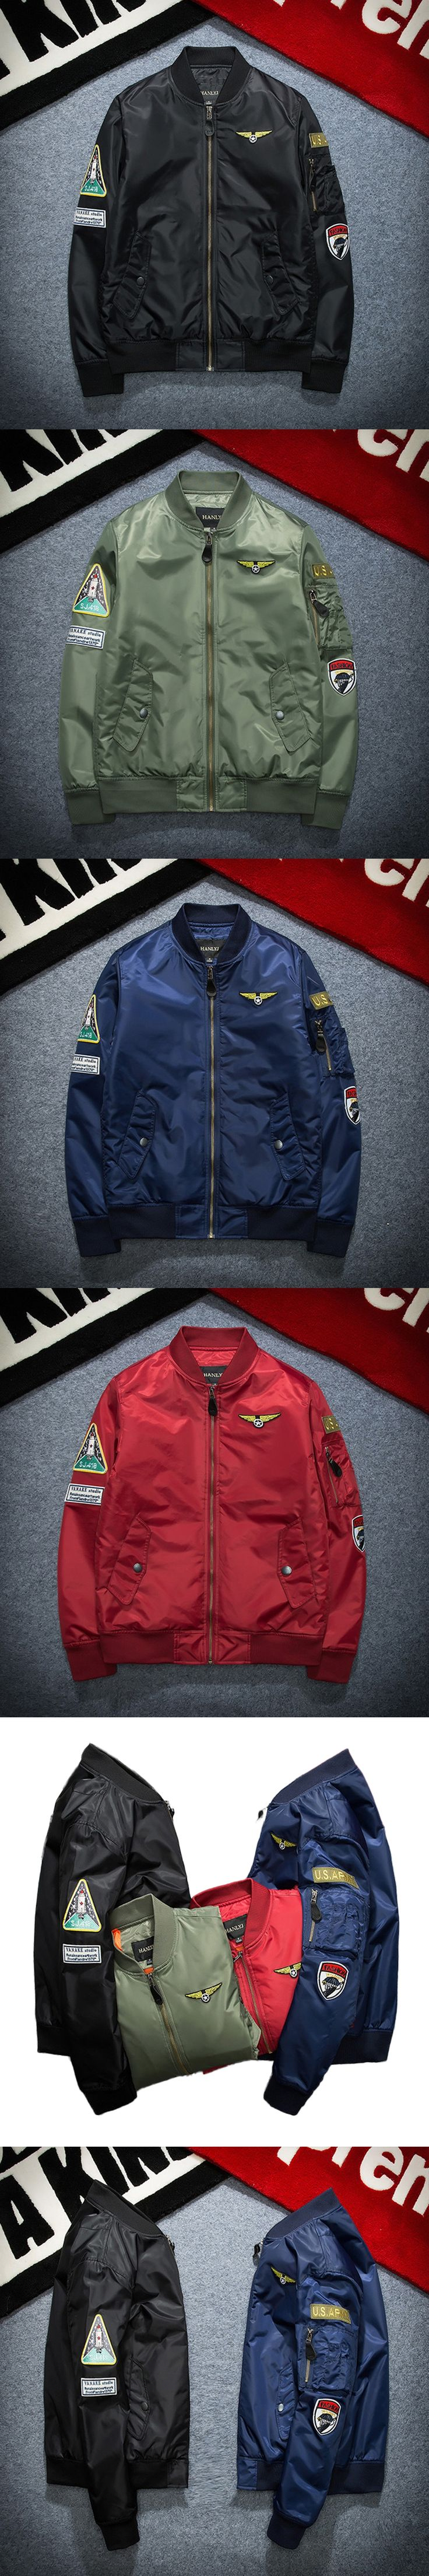 New Street fashion Men Bomber MA1 jacket Retro Embroidery Badge Anarchy Solid color Coat Black Red Army green Dark blue